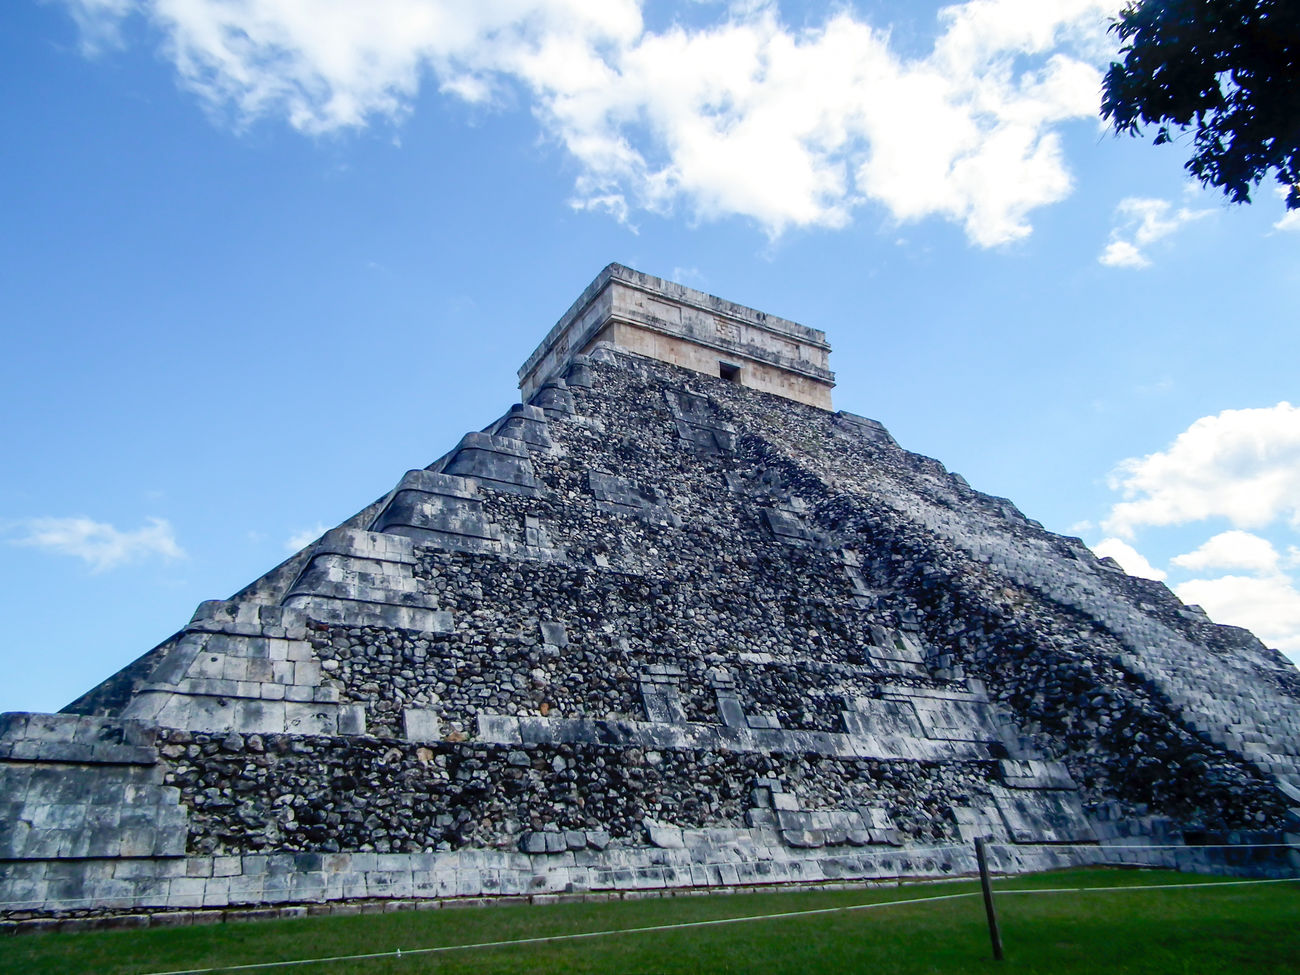 Ancient Civilization Archaeological Sites Archaeology Architecture Chichen Itza El Castillo Famous Place History Kukulkan Low Angle View Mayan Mayan Ruins Mayan Wonders Old Ruin Pyramid Stone Material The Past Tourism Travel Destinations Weathered Yucatan Mexico Yucatan Peninsula Yúcatan